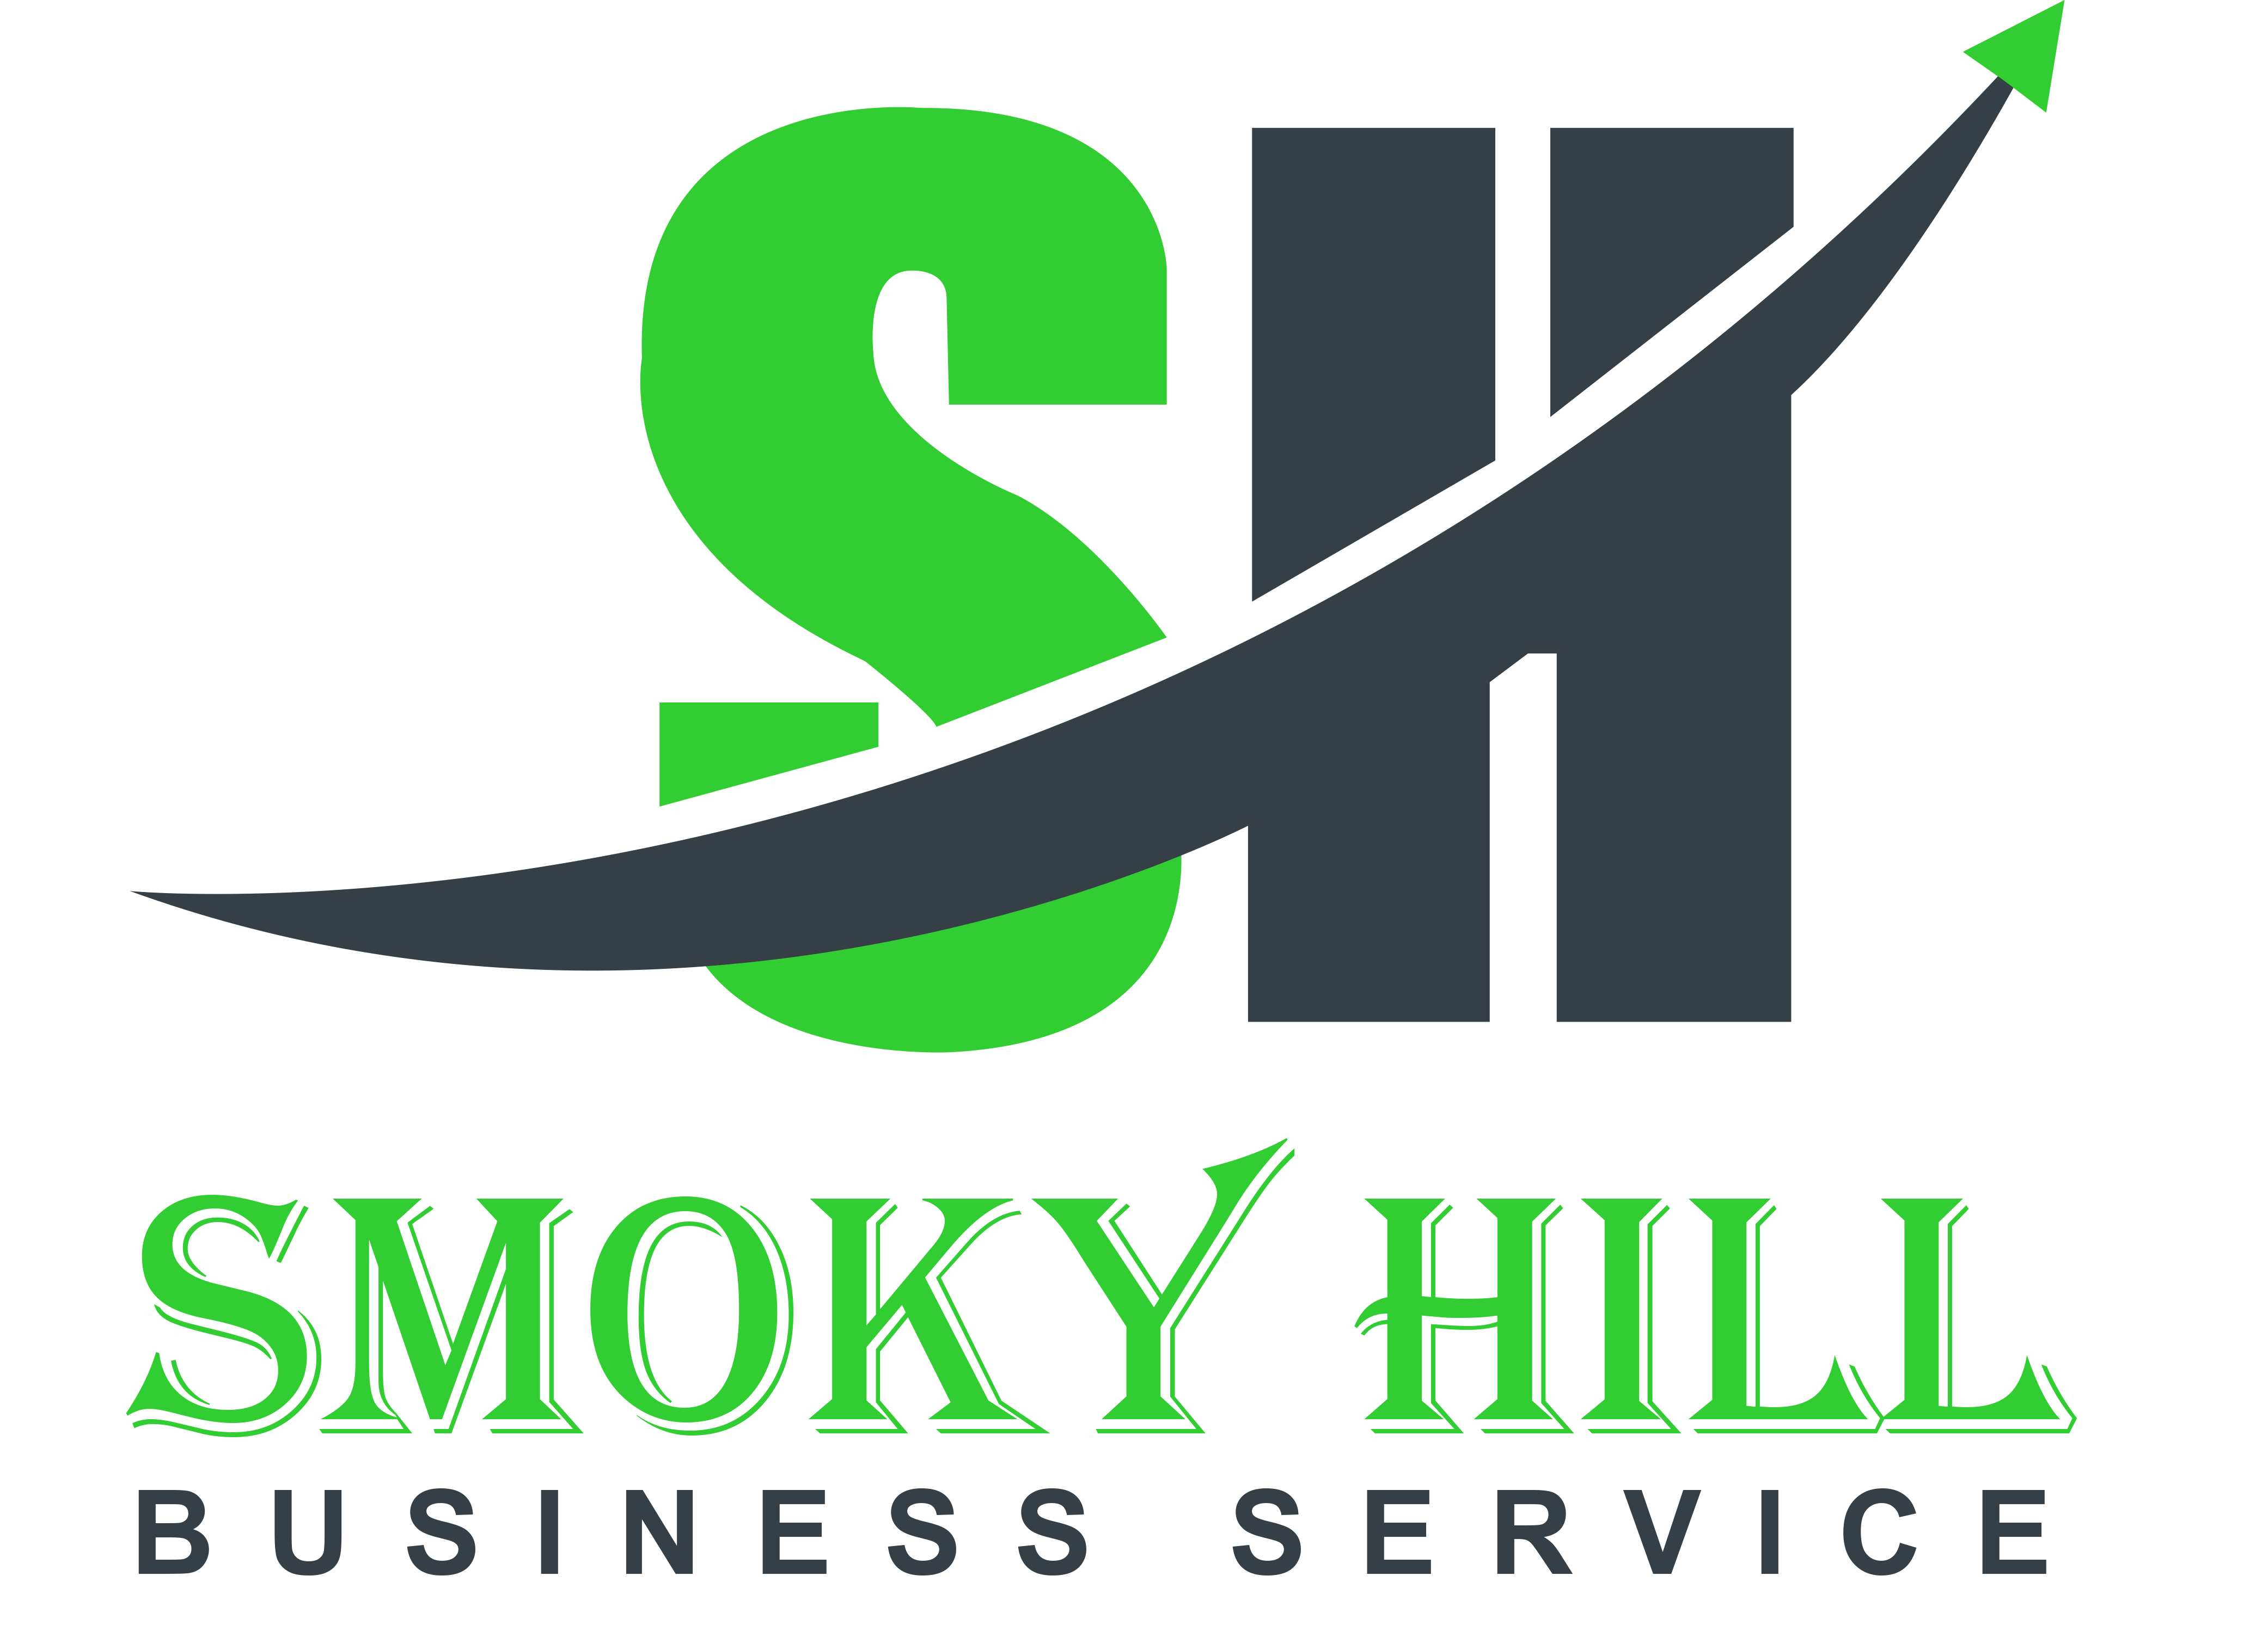 Smoky Hill Business Service   Cutting-Edge Service with Old